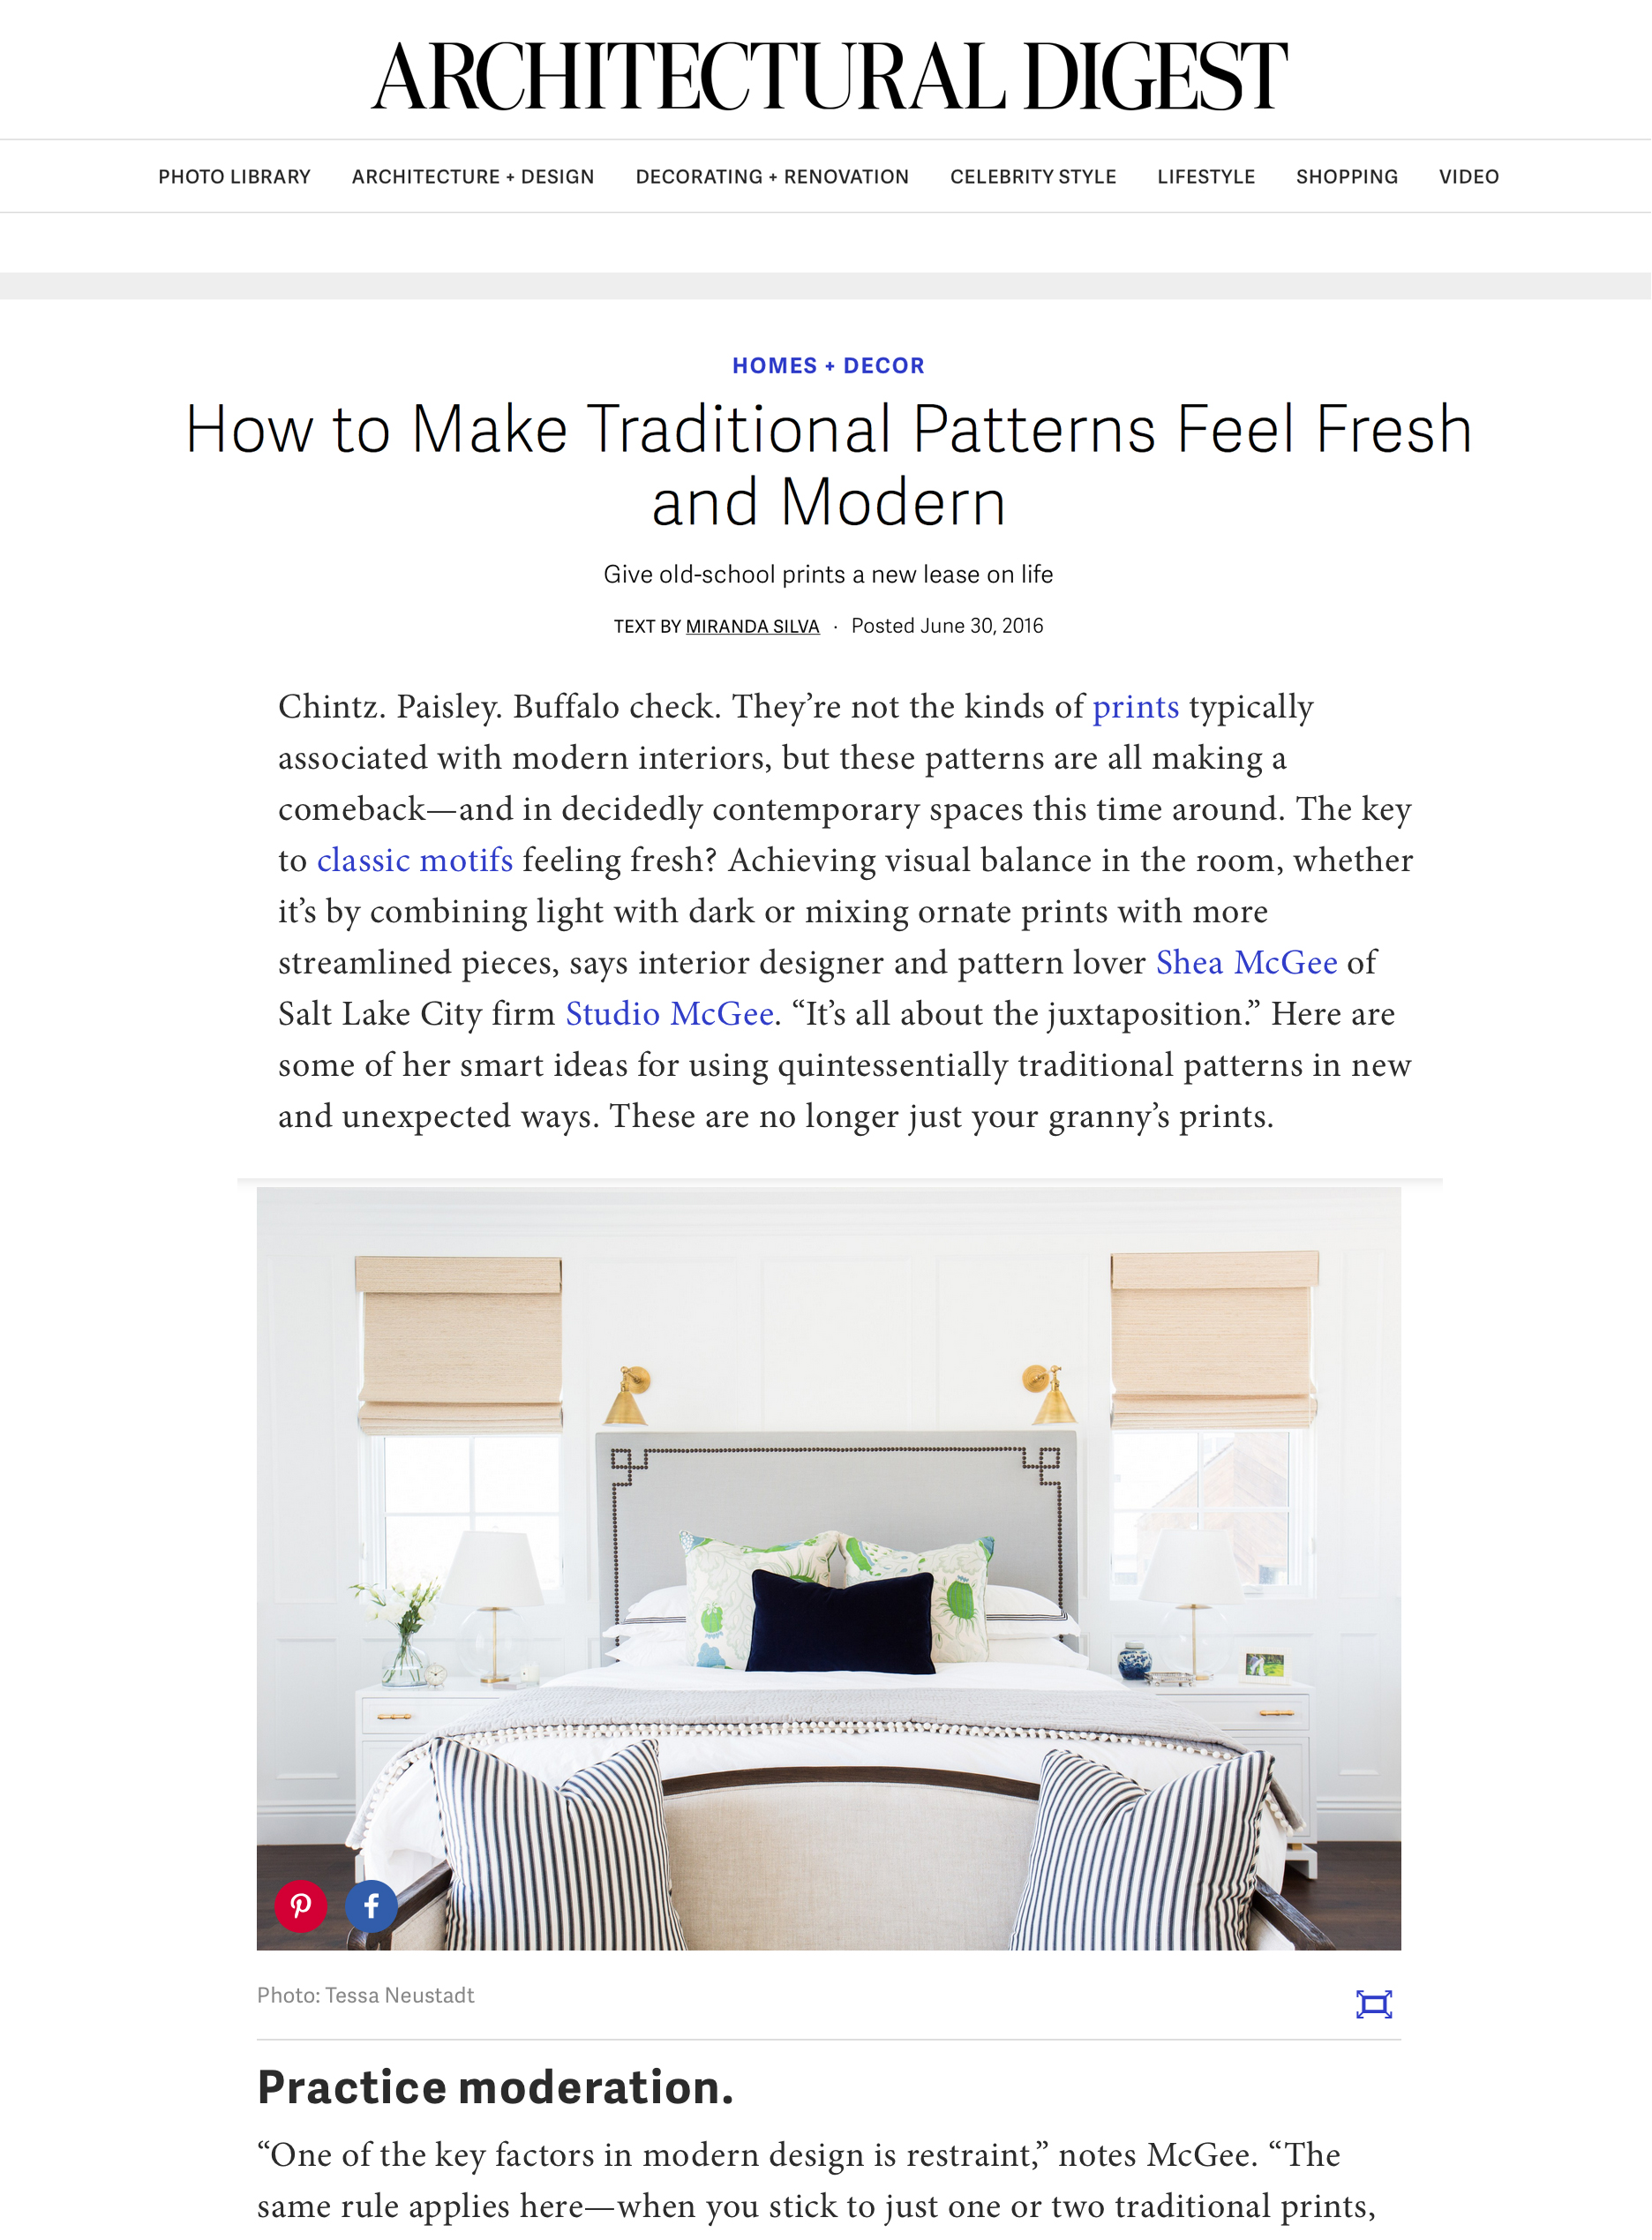 Studio McGee | Modern Room Ideas with Architectural Digest